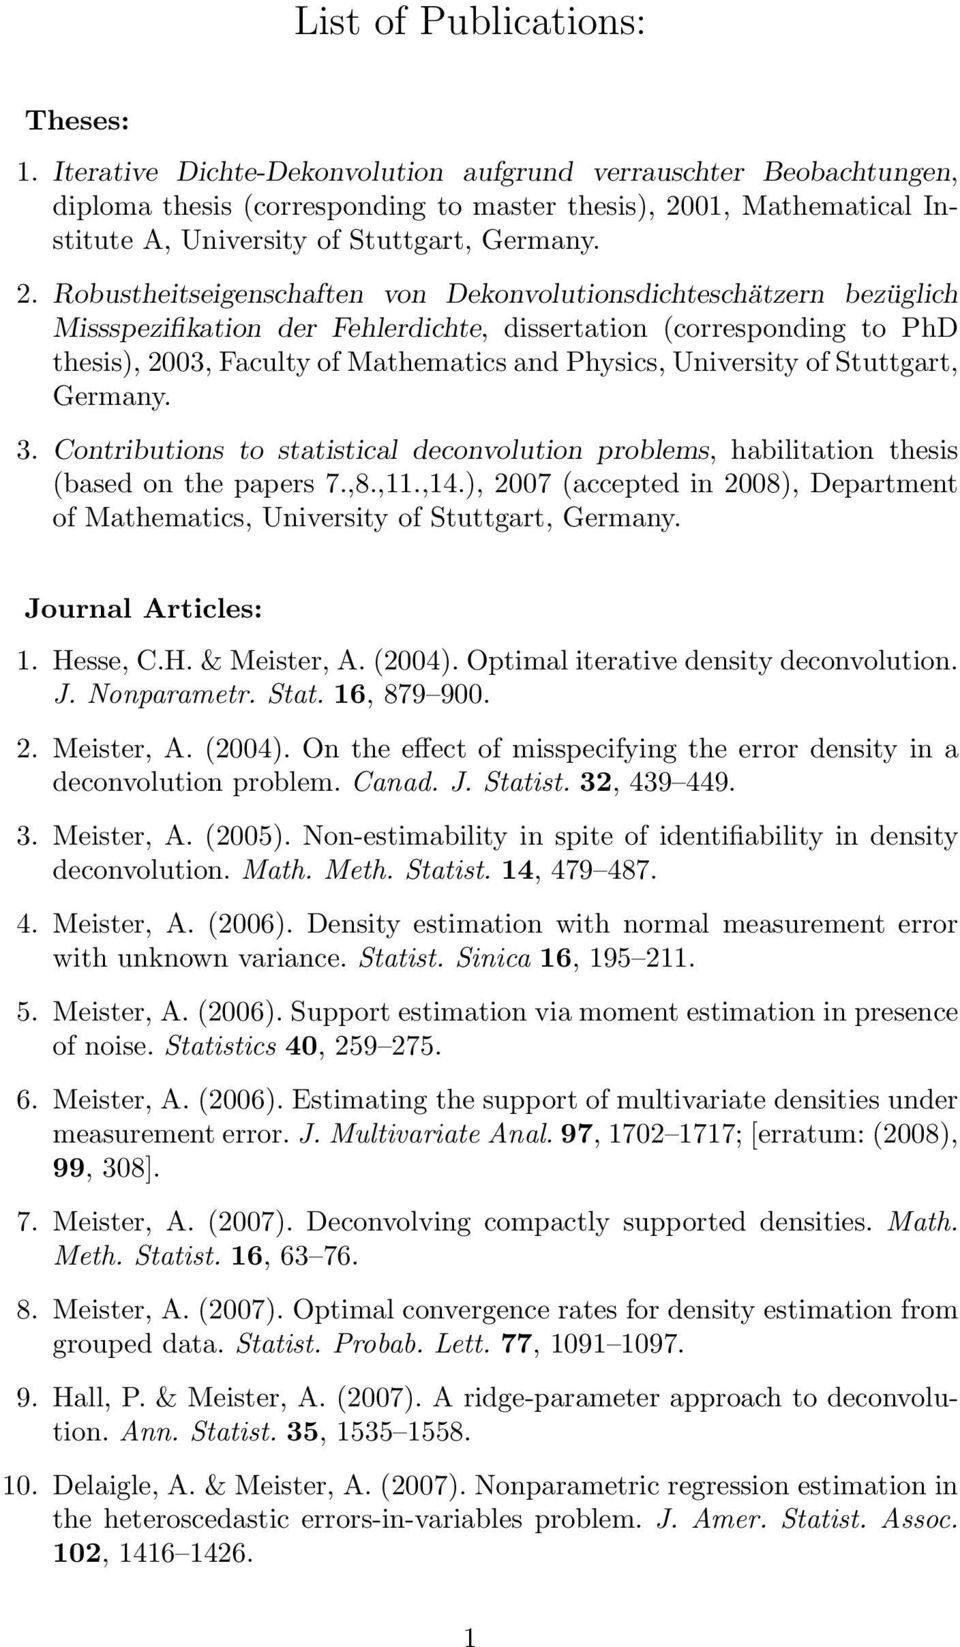 01, Mathematical Institute A, University of Stuttgart, Germany. 2.